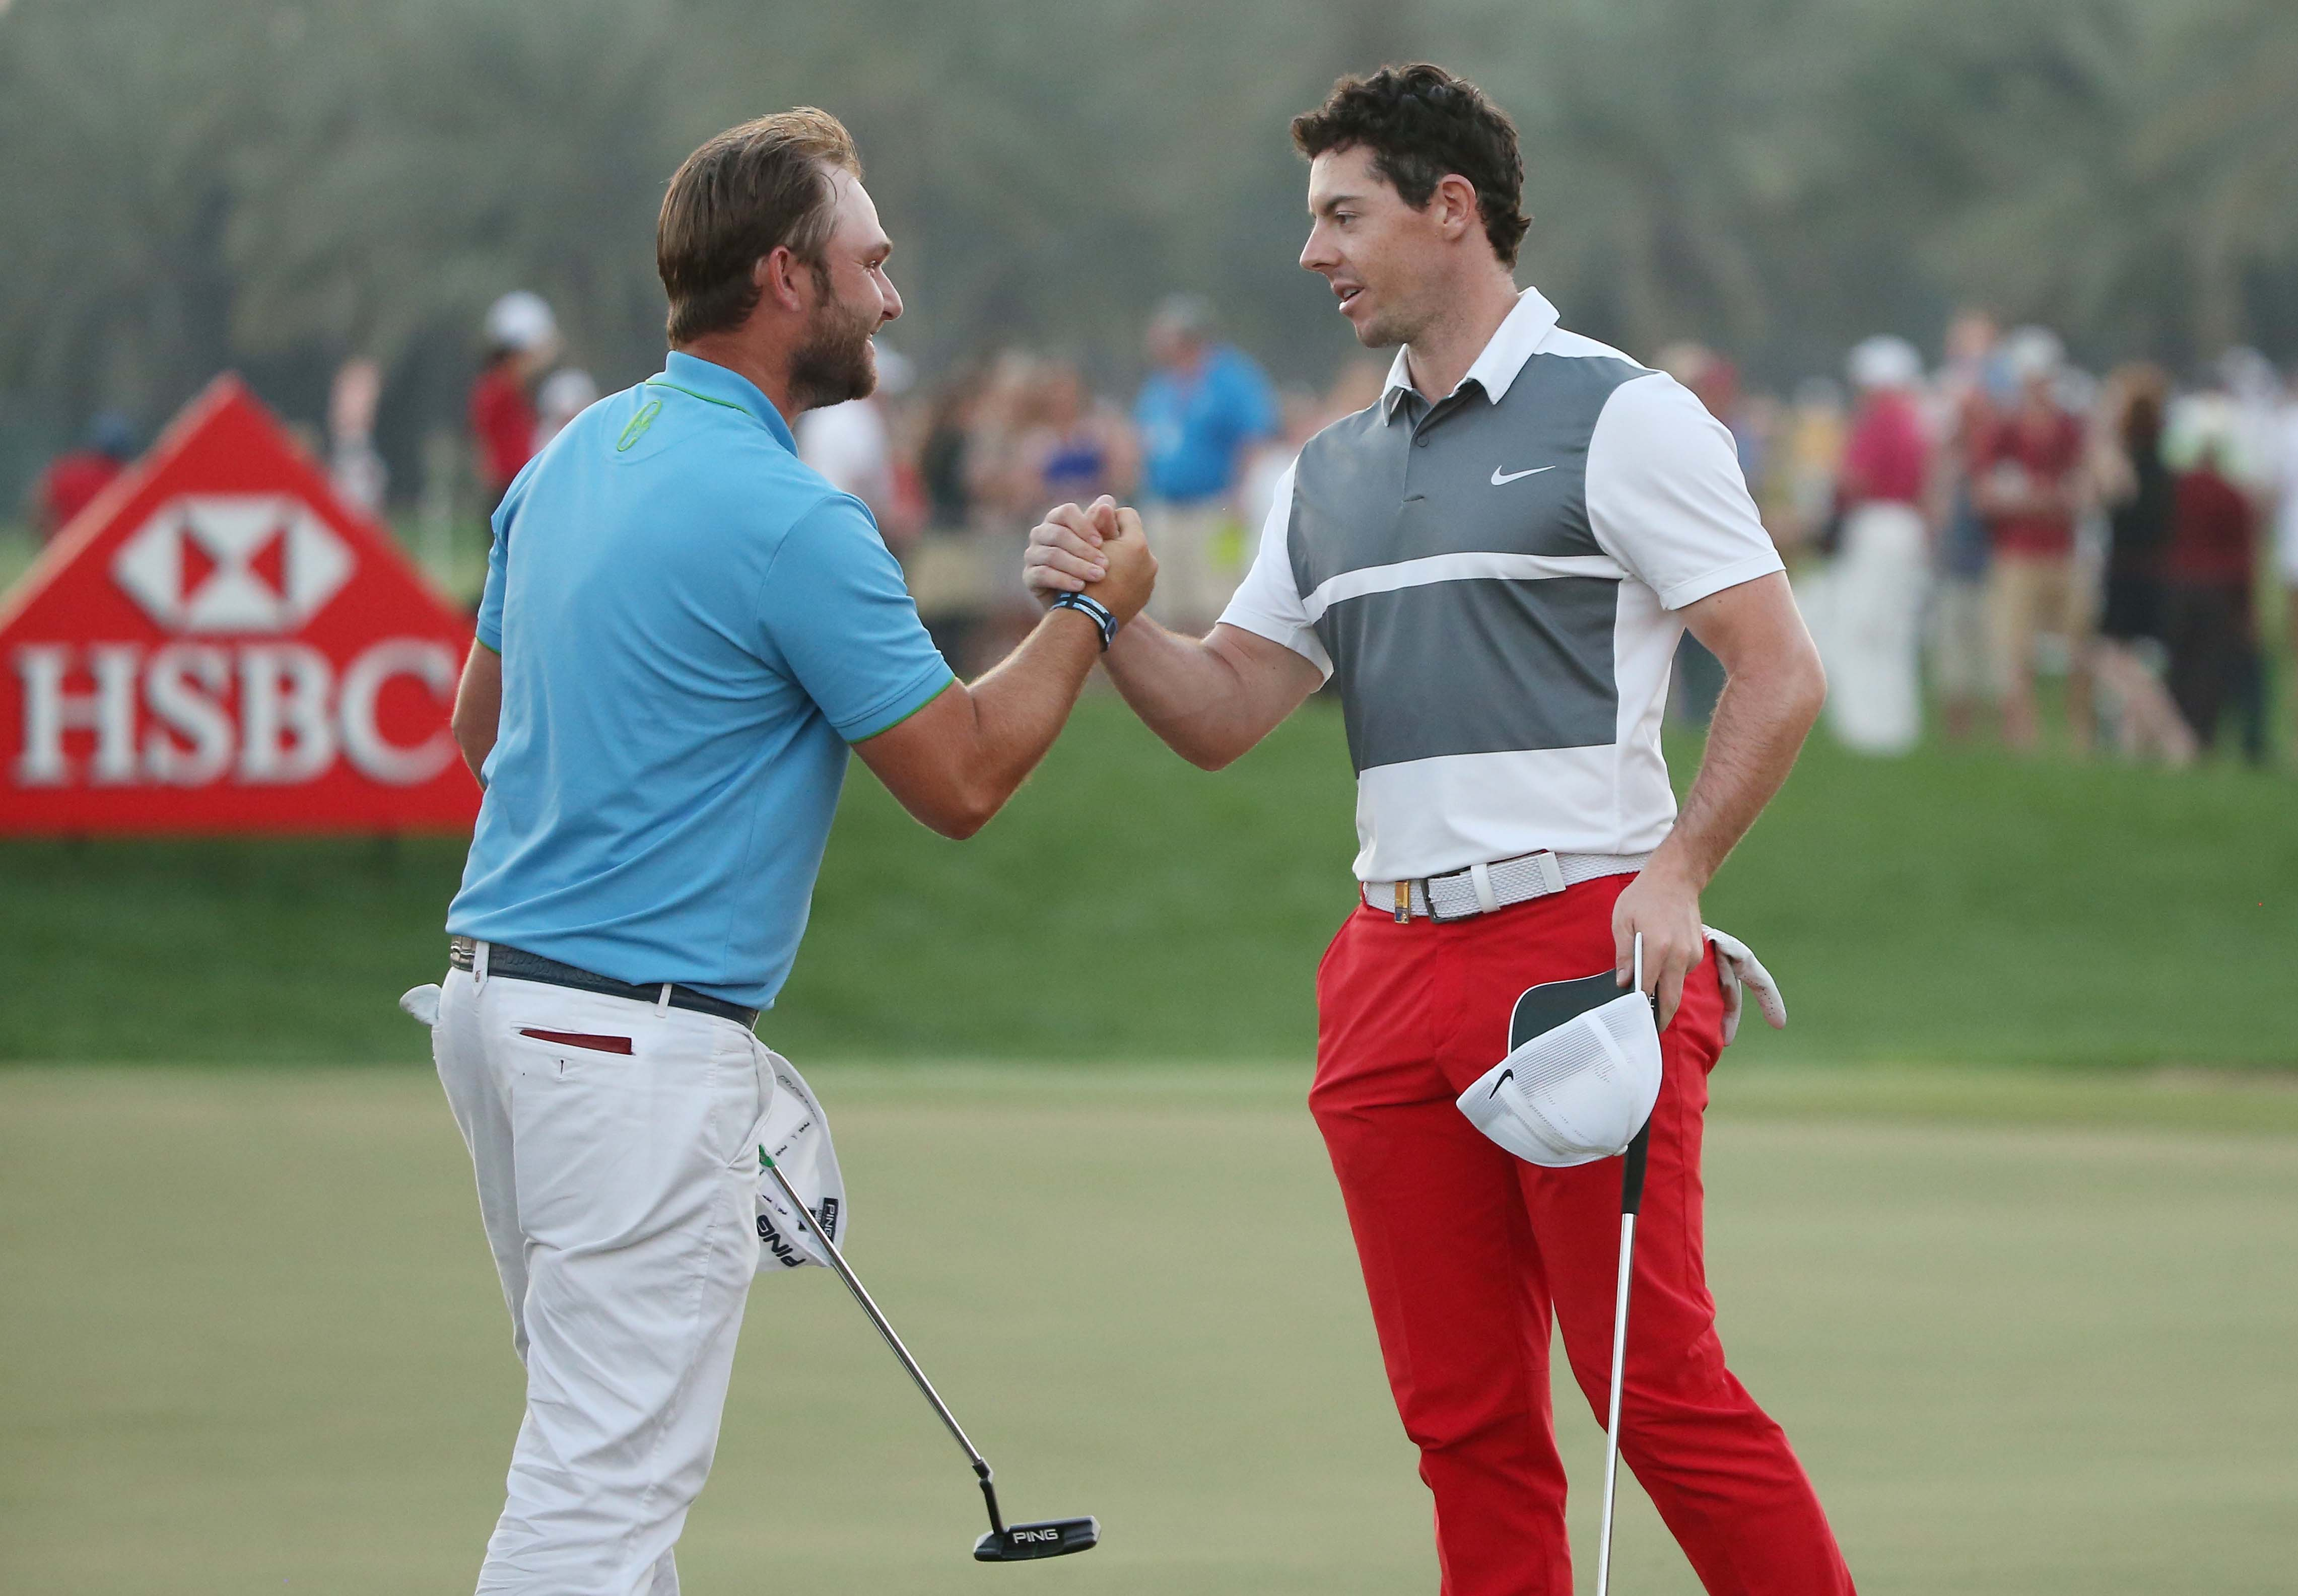 Andy Sullivan and Rory McIlroy